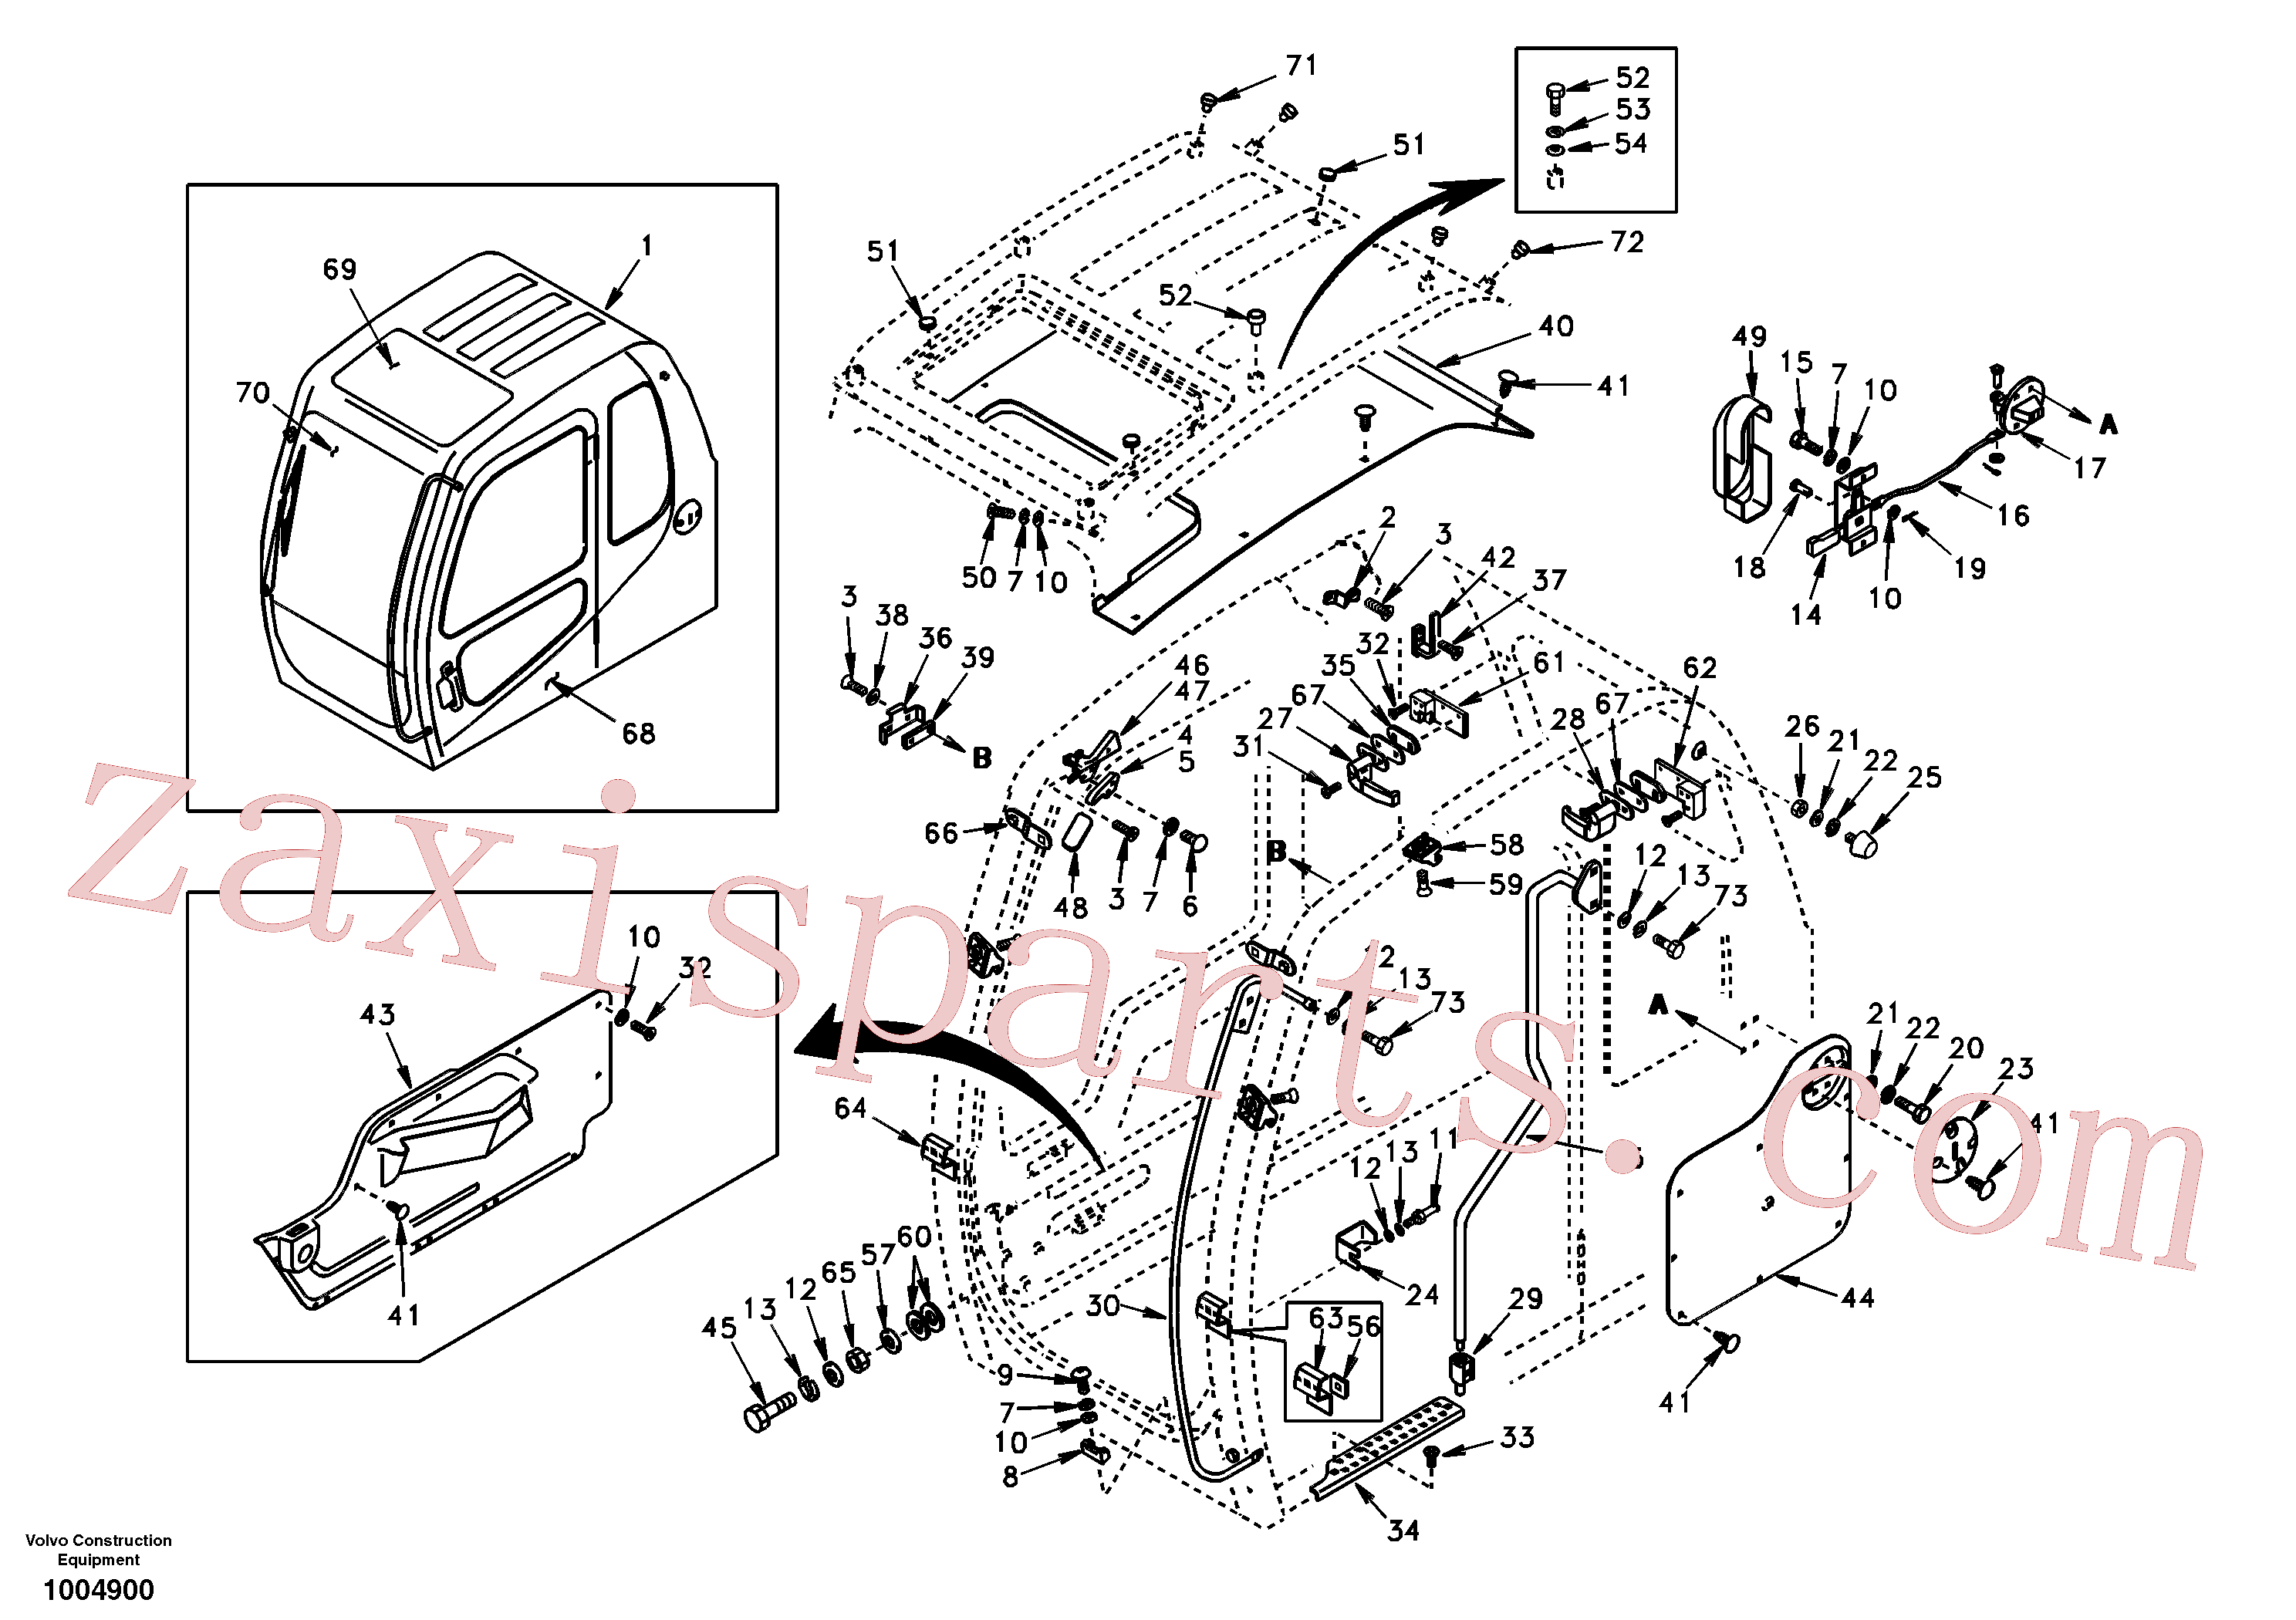 SA9011-10805 for Volvo Operator's cab(1004900 assembly)